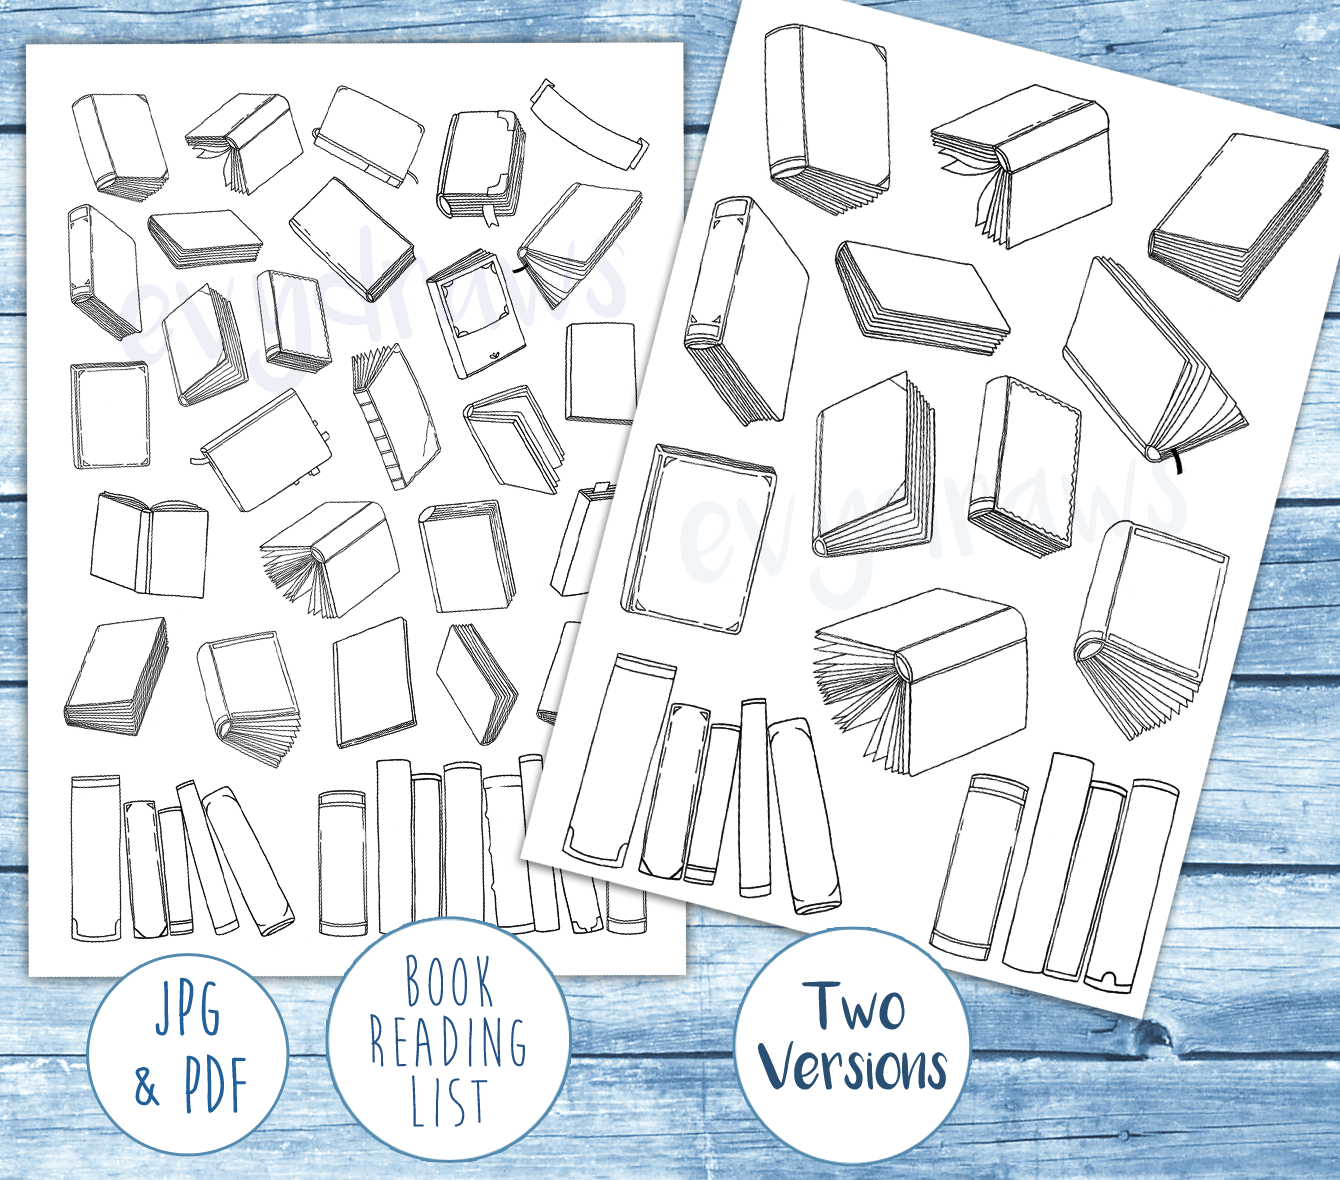 book-reading-tracker-printables-two-versions.PNG